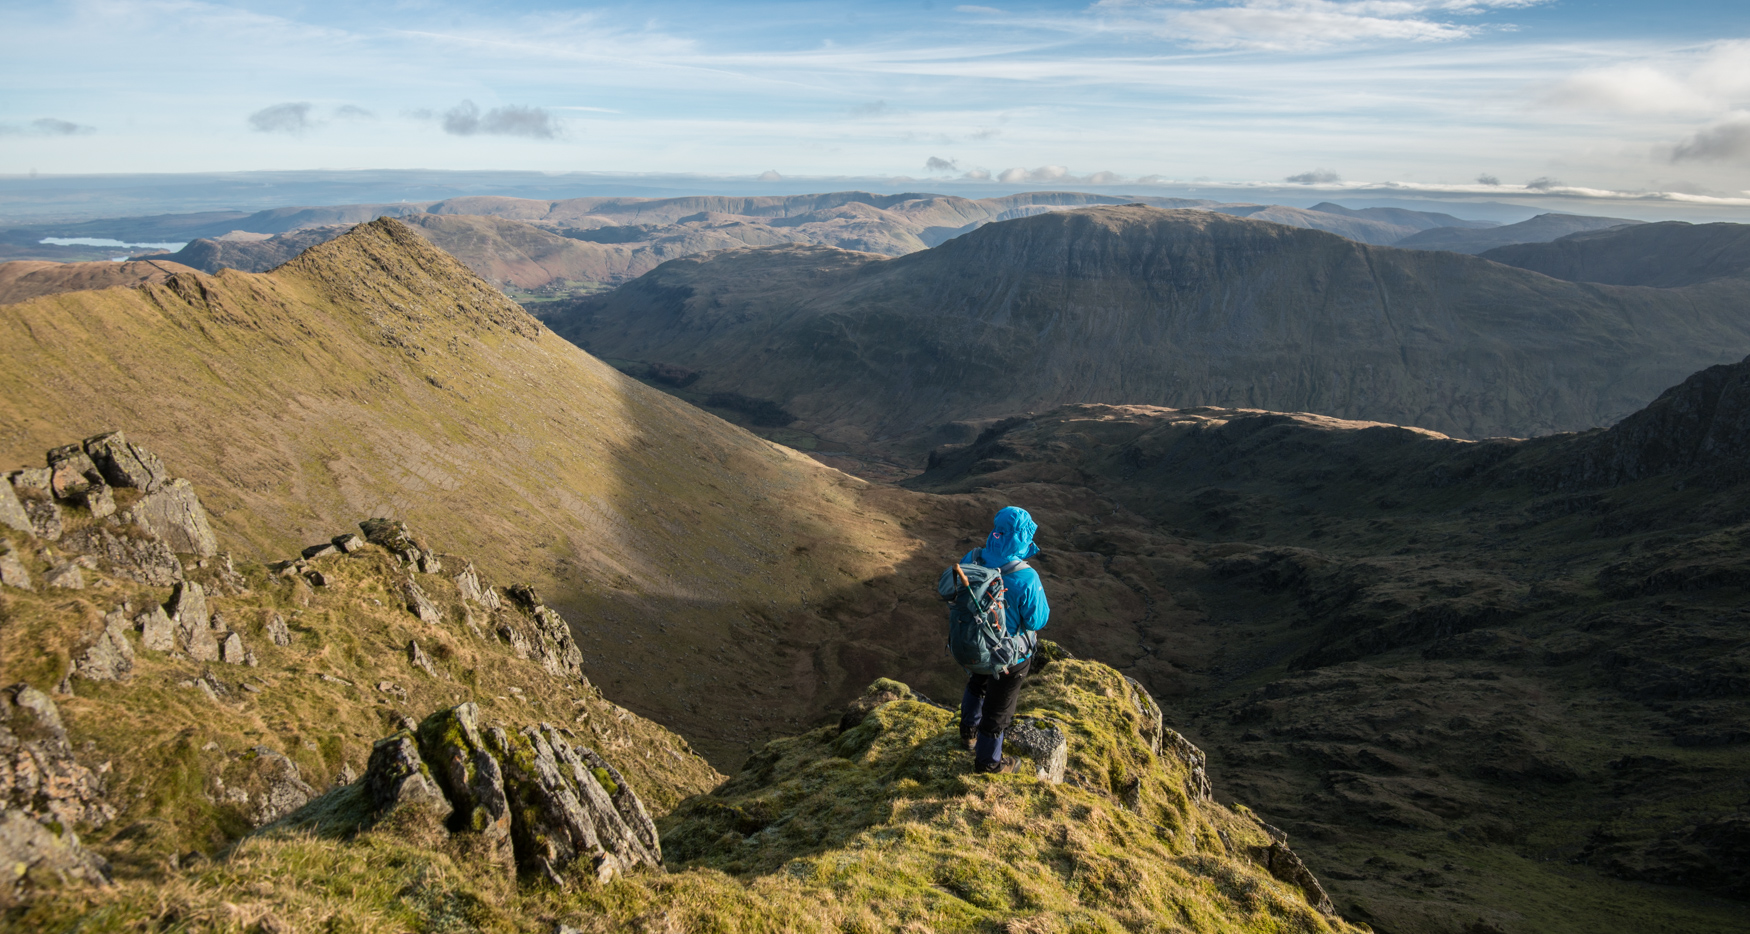 Looking down into Nethermost Cove from the ridgeline. Striding Edge can be seen to the left.